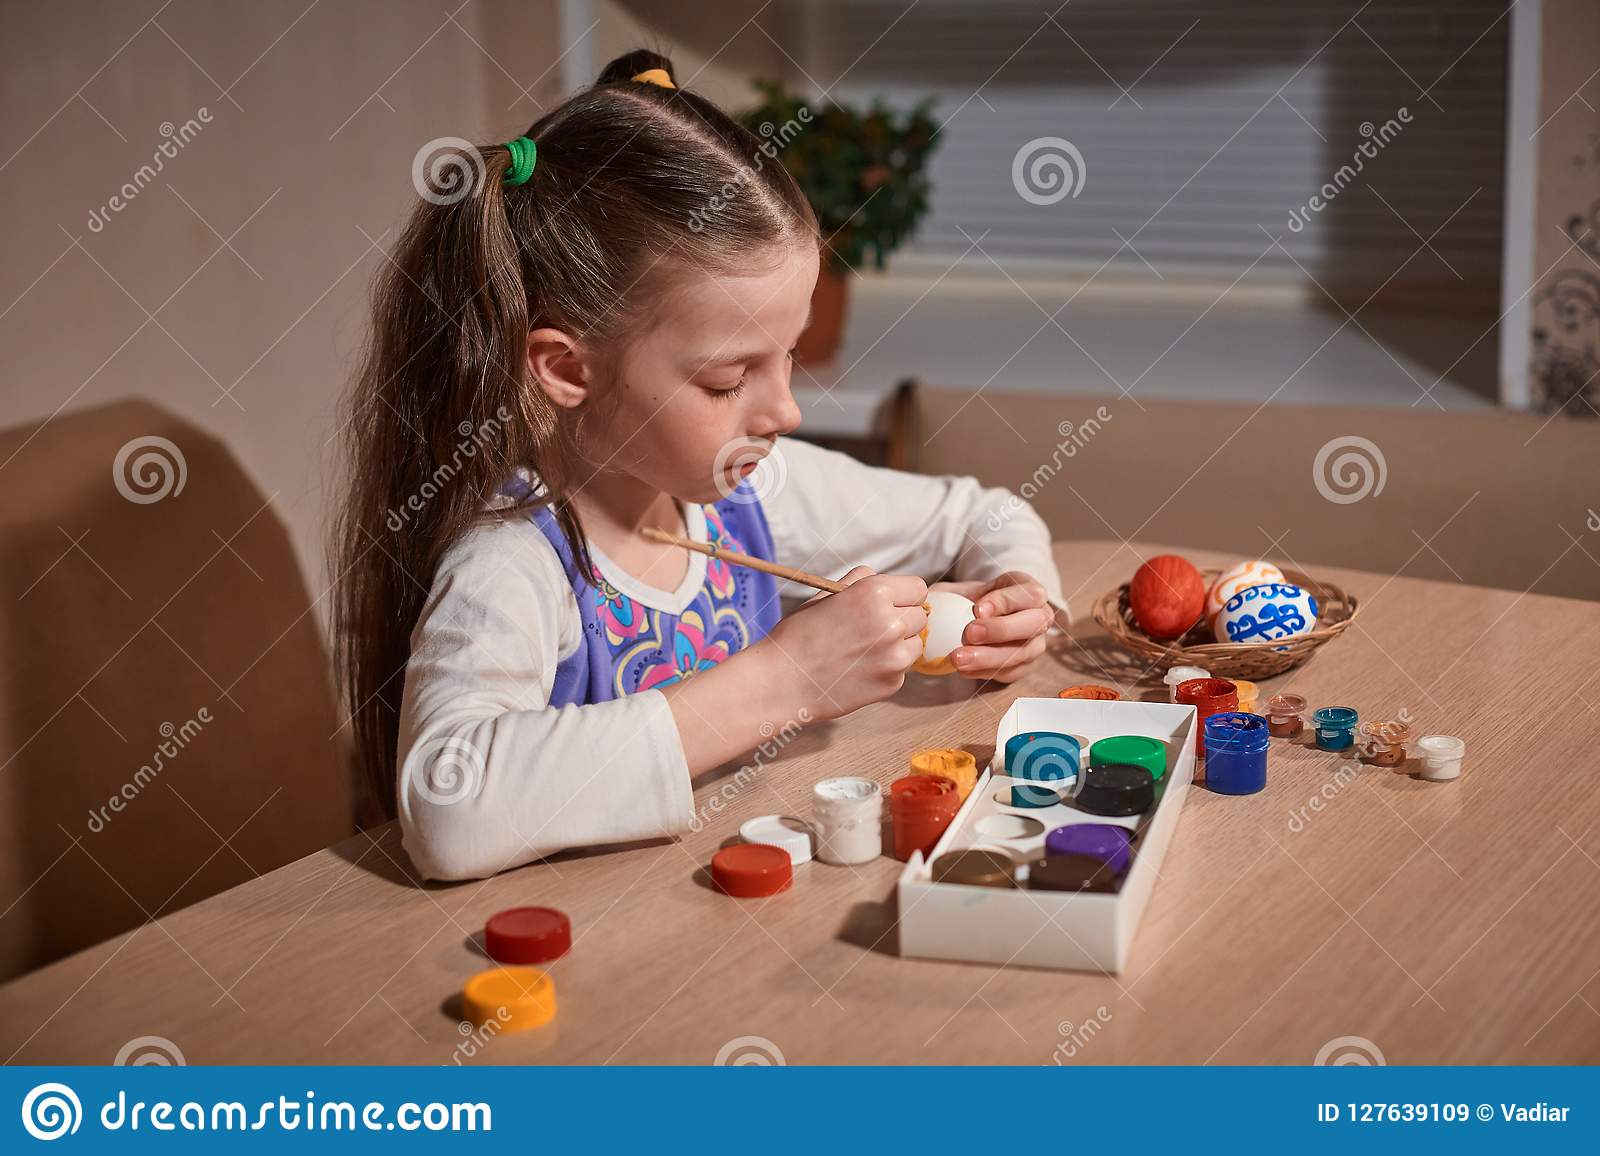 Girl Caucasian appearance with two pigtails sitting at a large wooden table and paints a brush and eggs for Easter